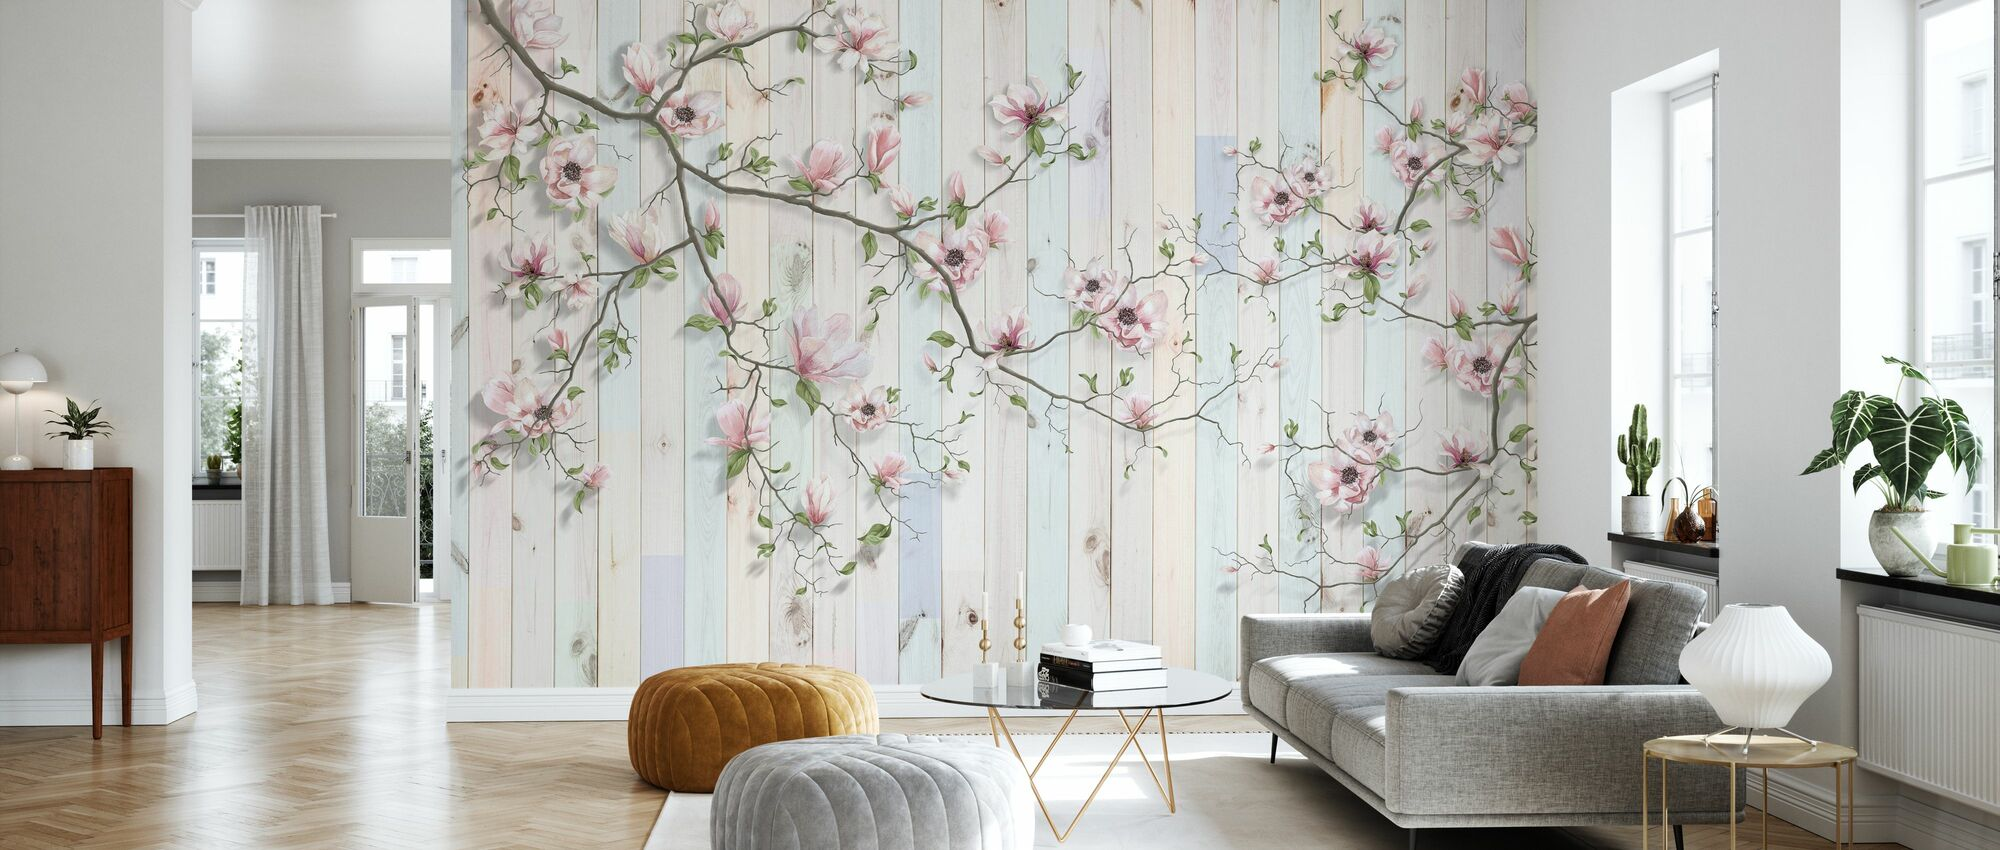 Magnolia Plank Wall - Wallpaper - Living Room